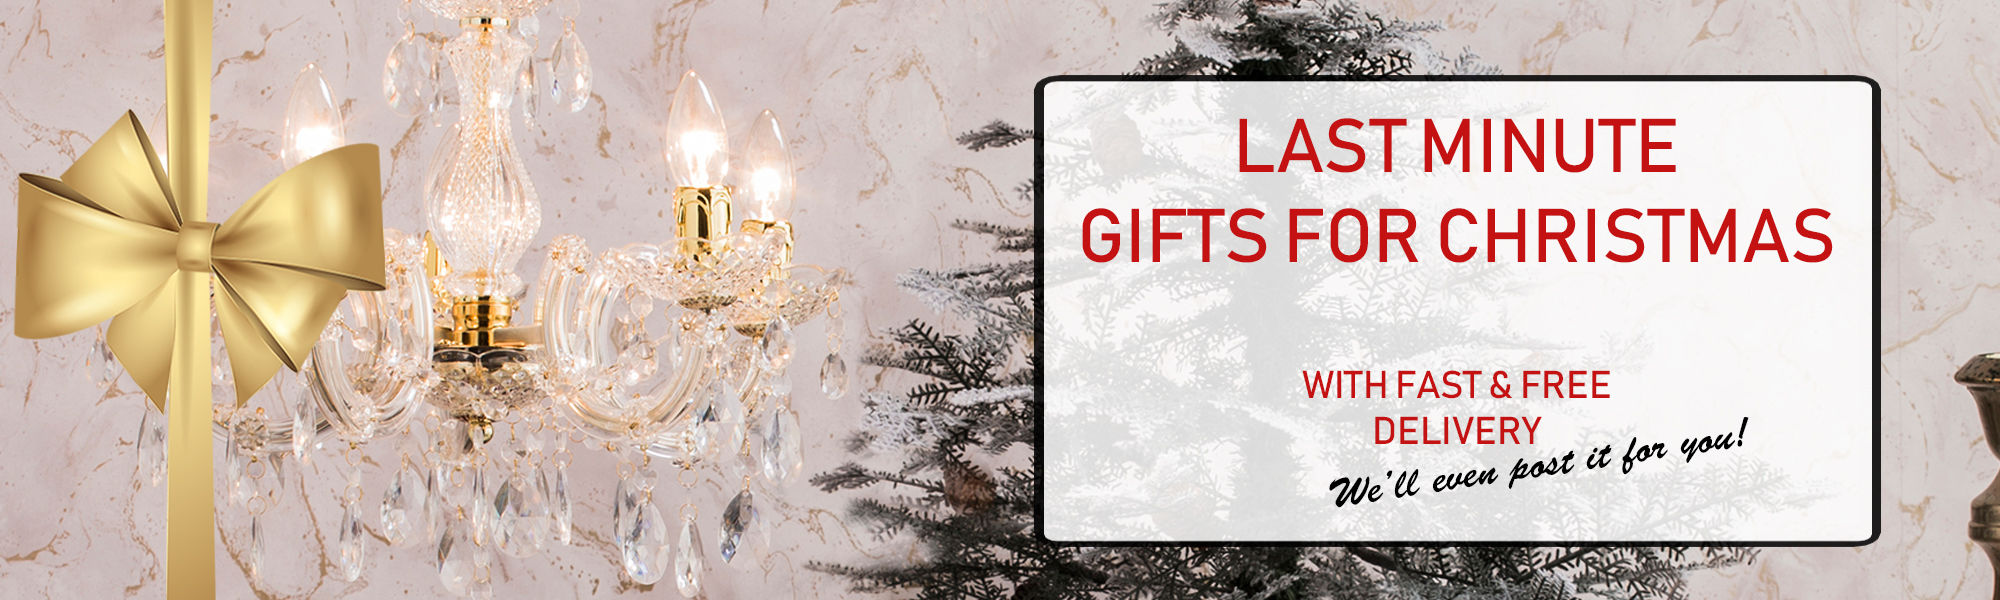 Last Minute Gifts For Christmas With Fast & Free Delivery